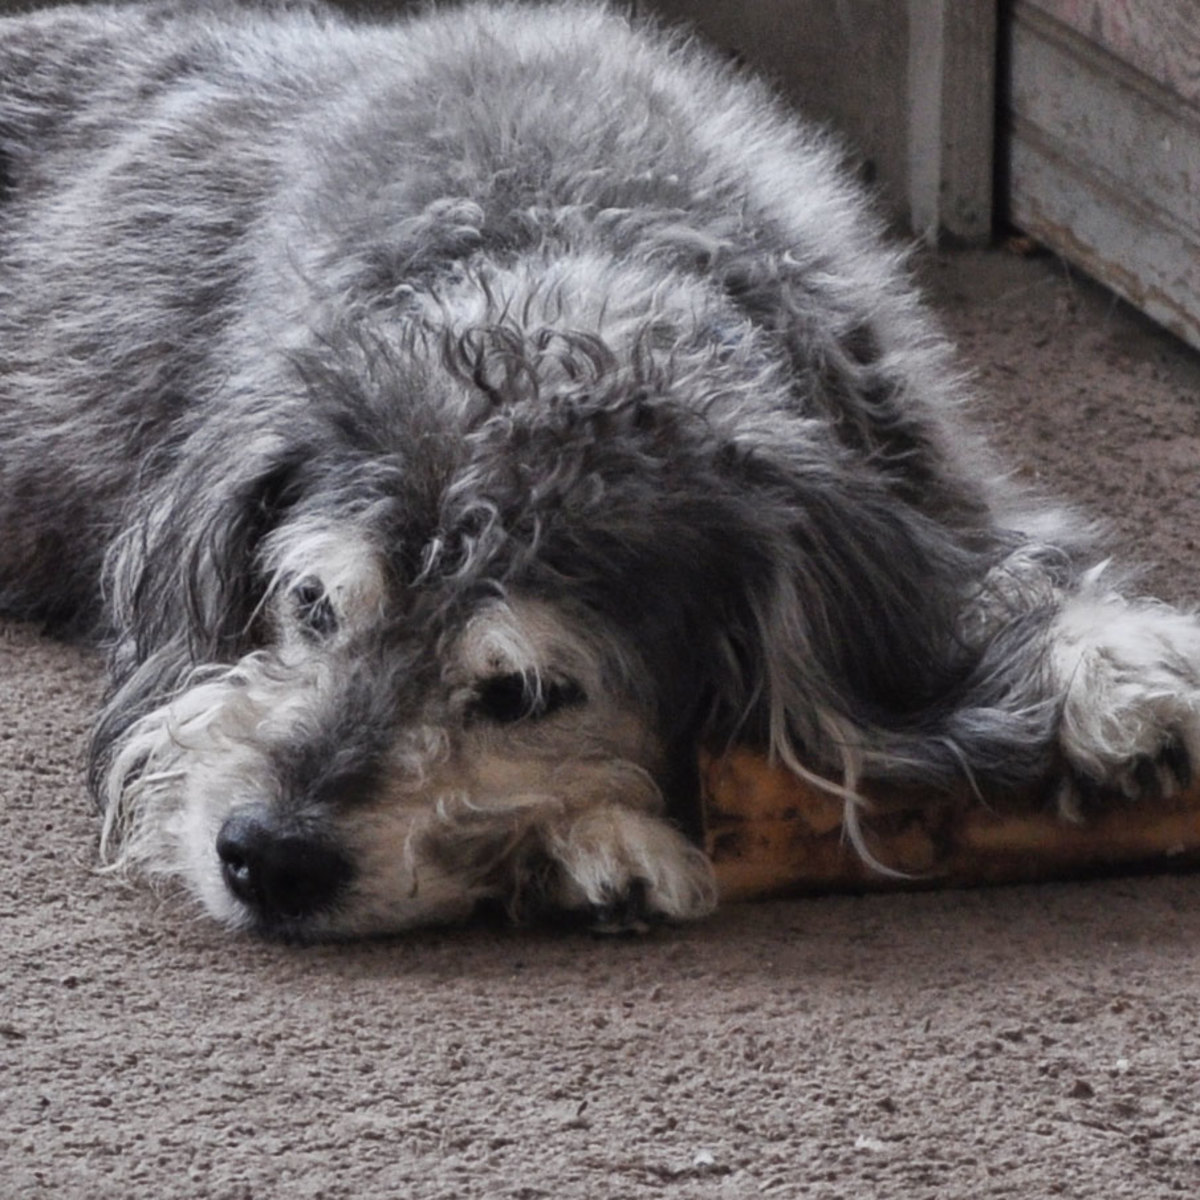 ...she never forgot to keep her bone nearby.